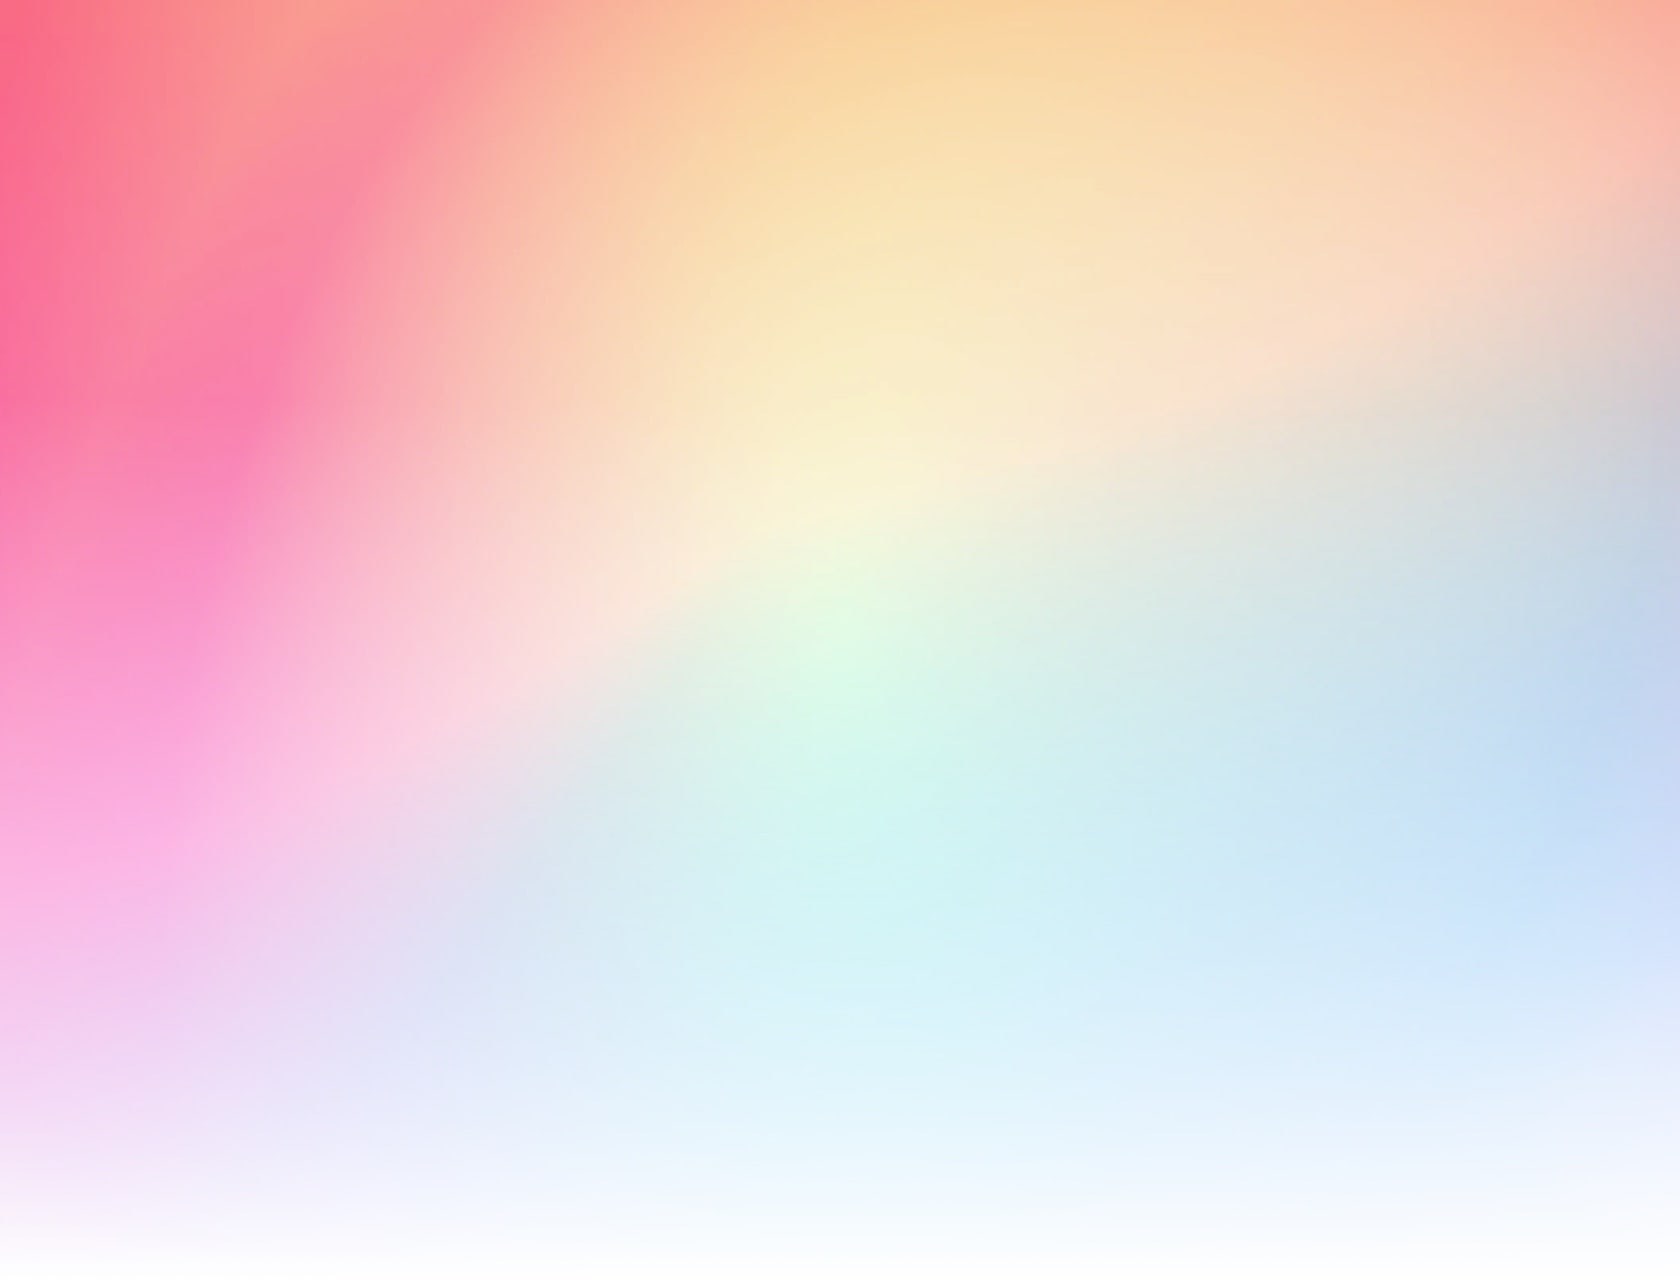 Abstract gradient layer 1